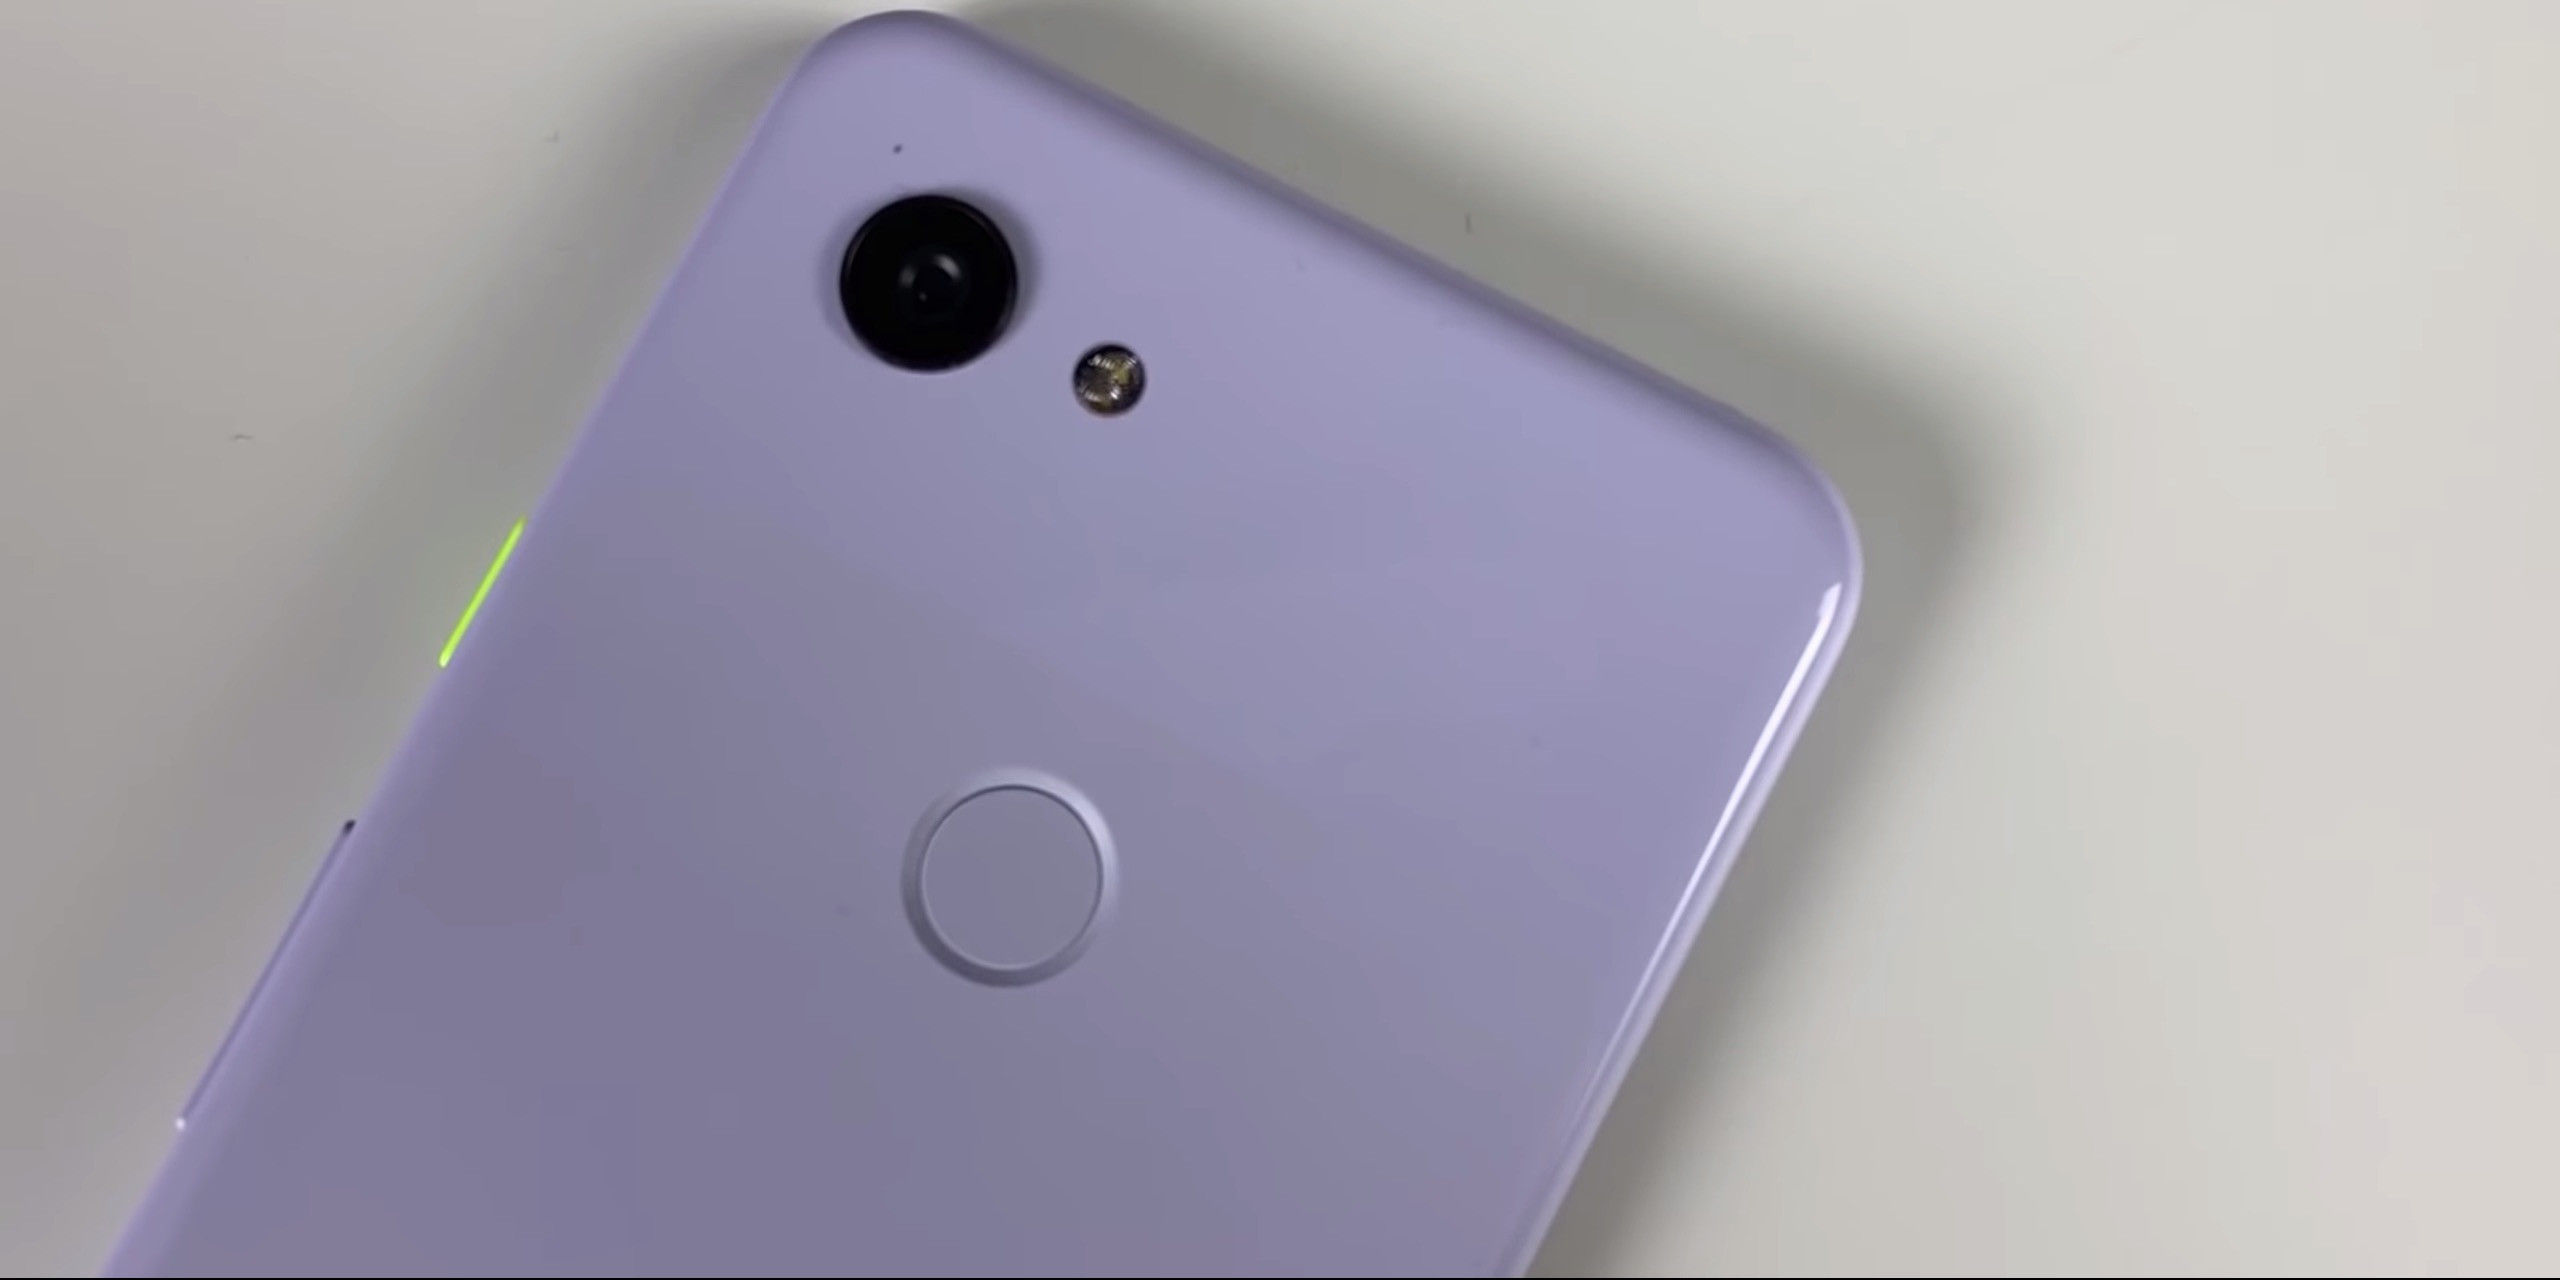 Google Pixel 3 Lite leaks again in latest look claiming similar camera quality